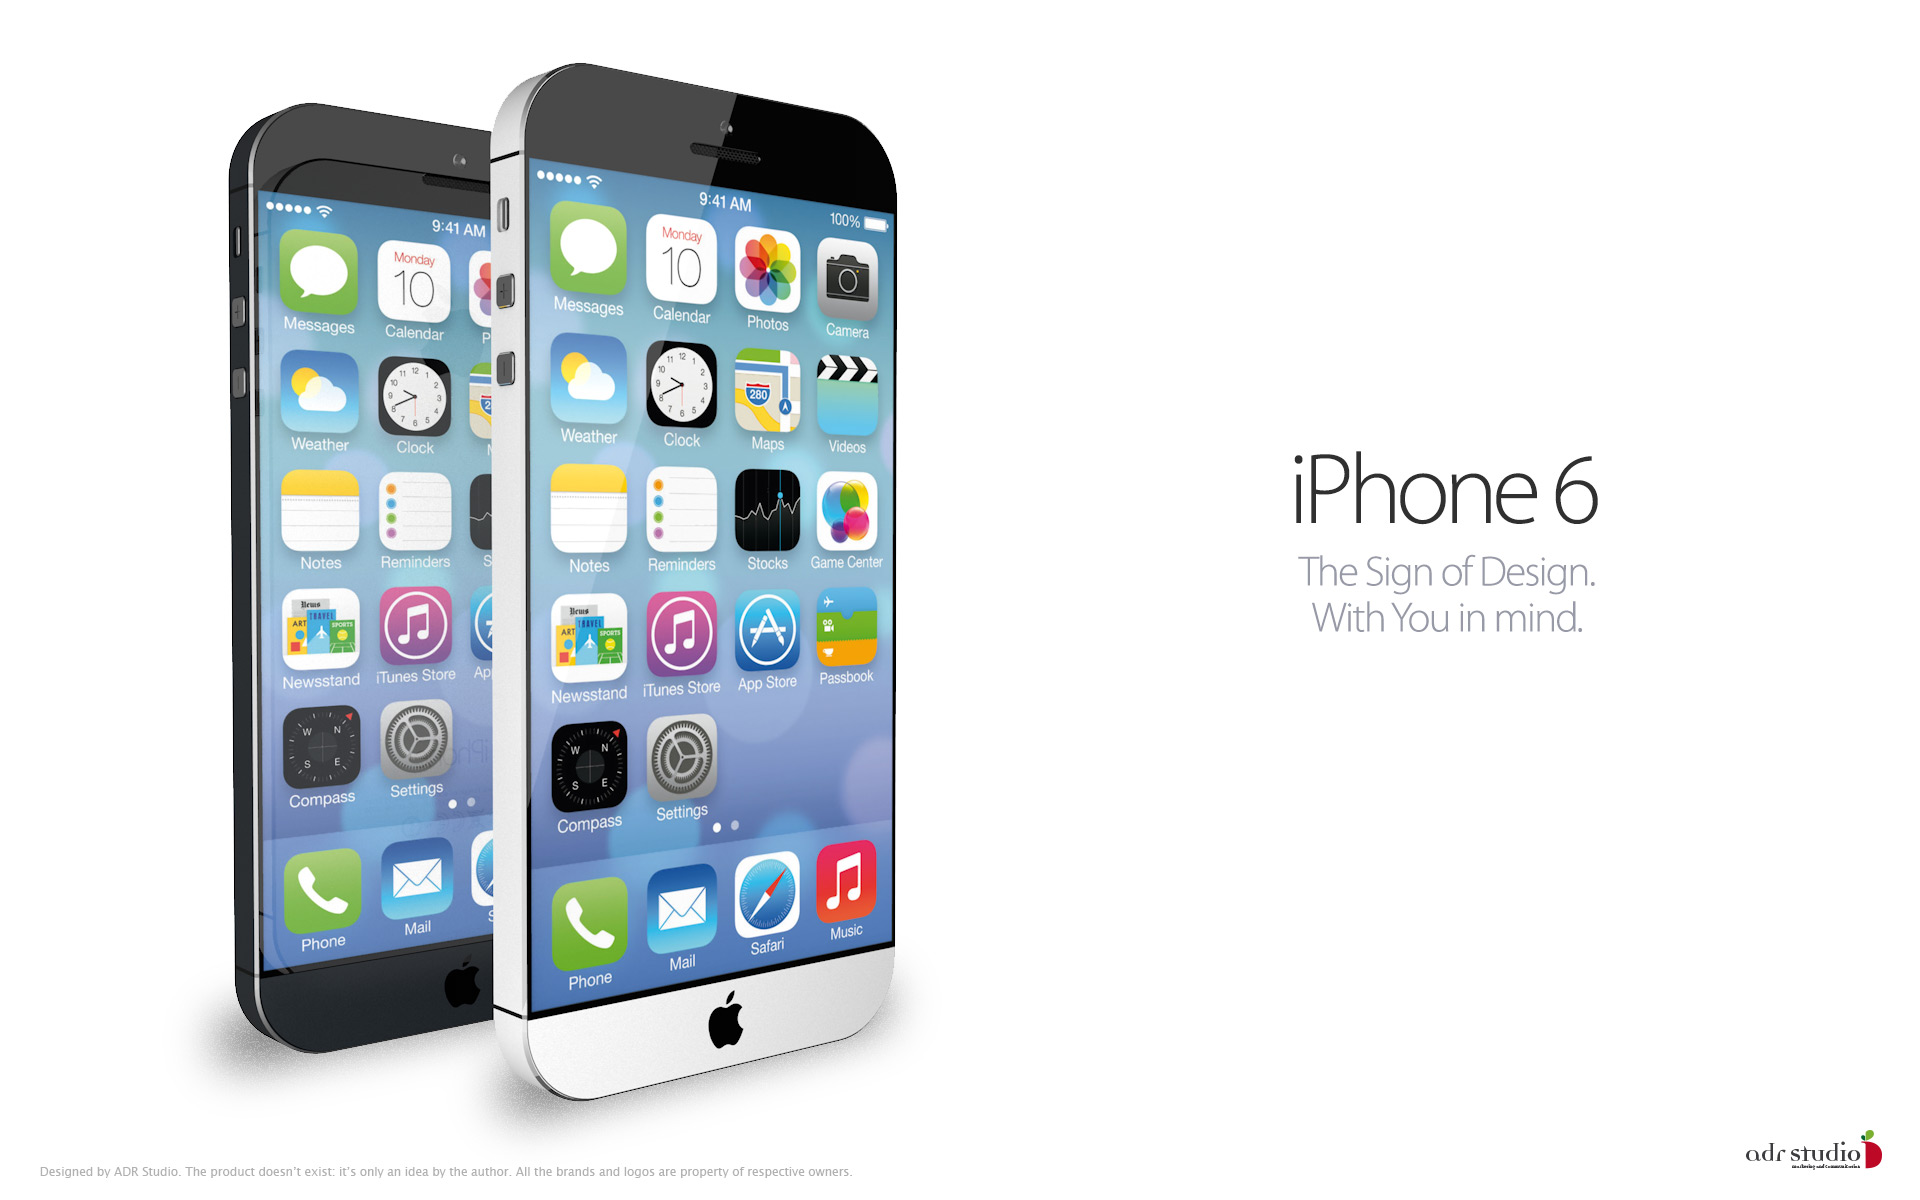 What Will the iPhone 6 Look Like?